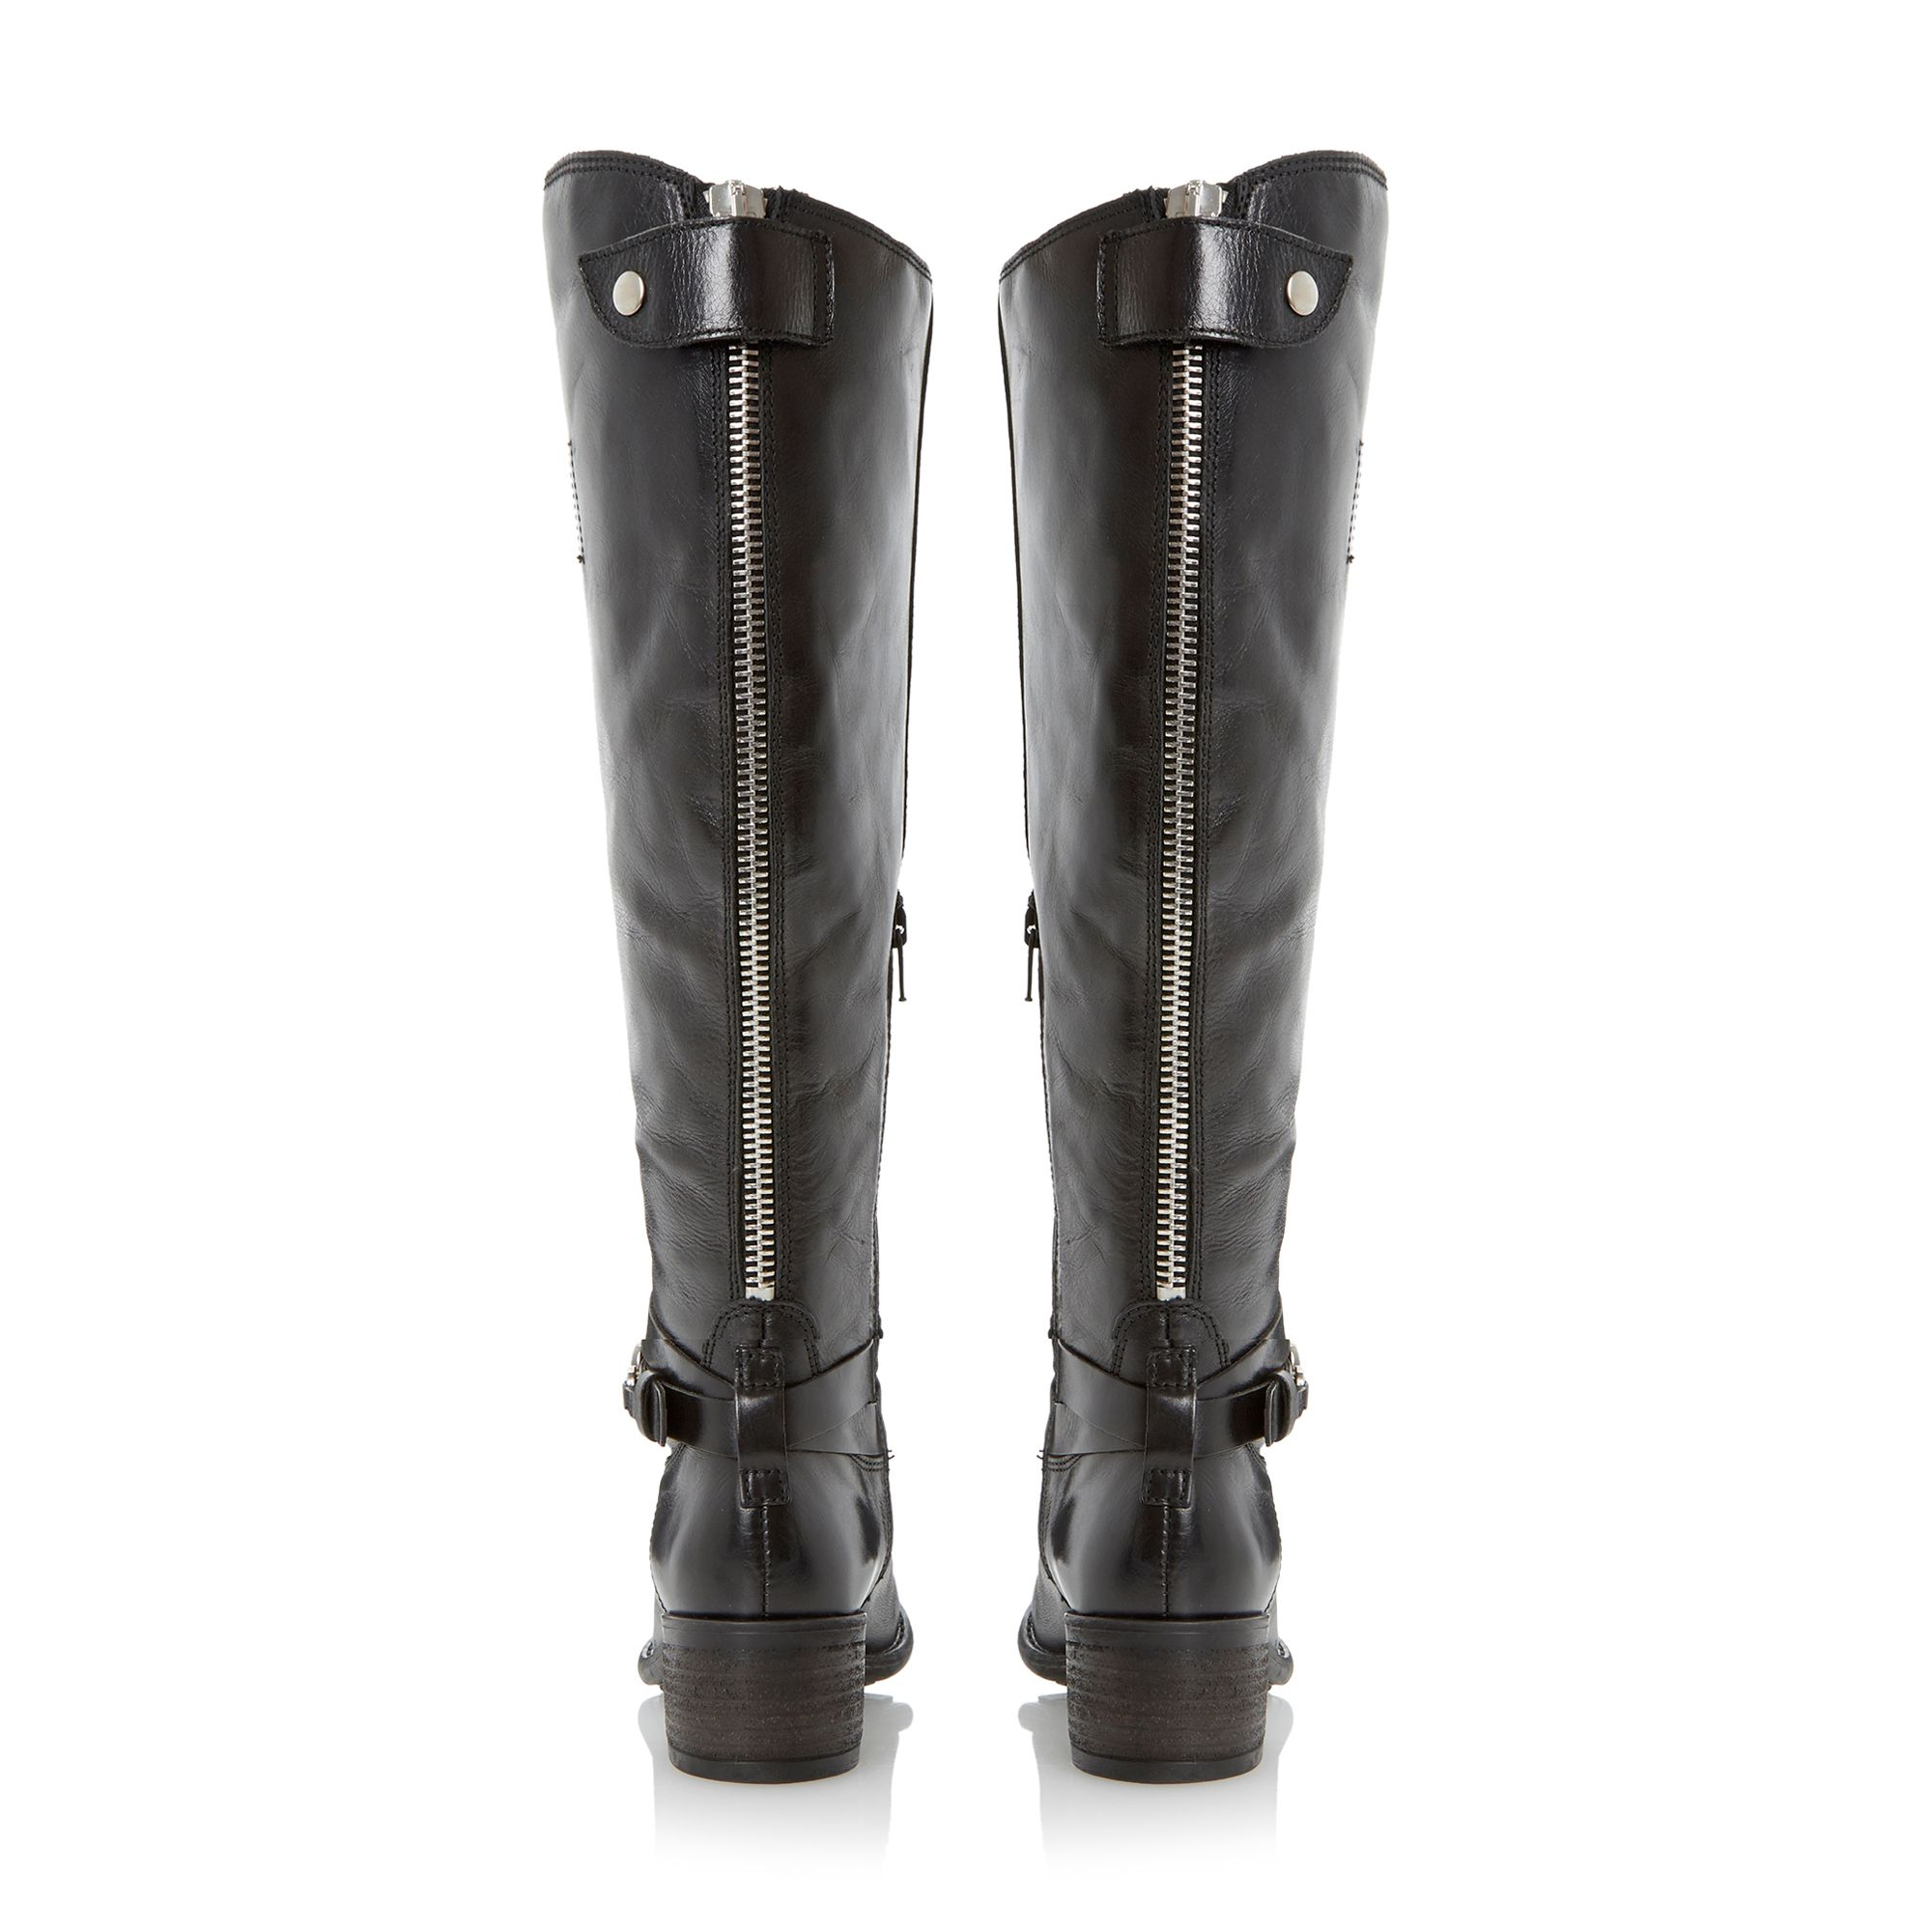 Dune Leather Tina Knee High Boots in Black Leather (Black)